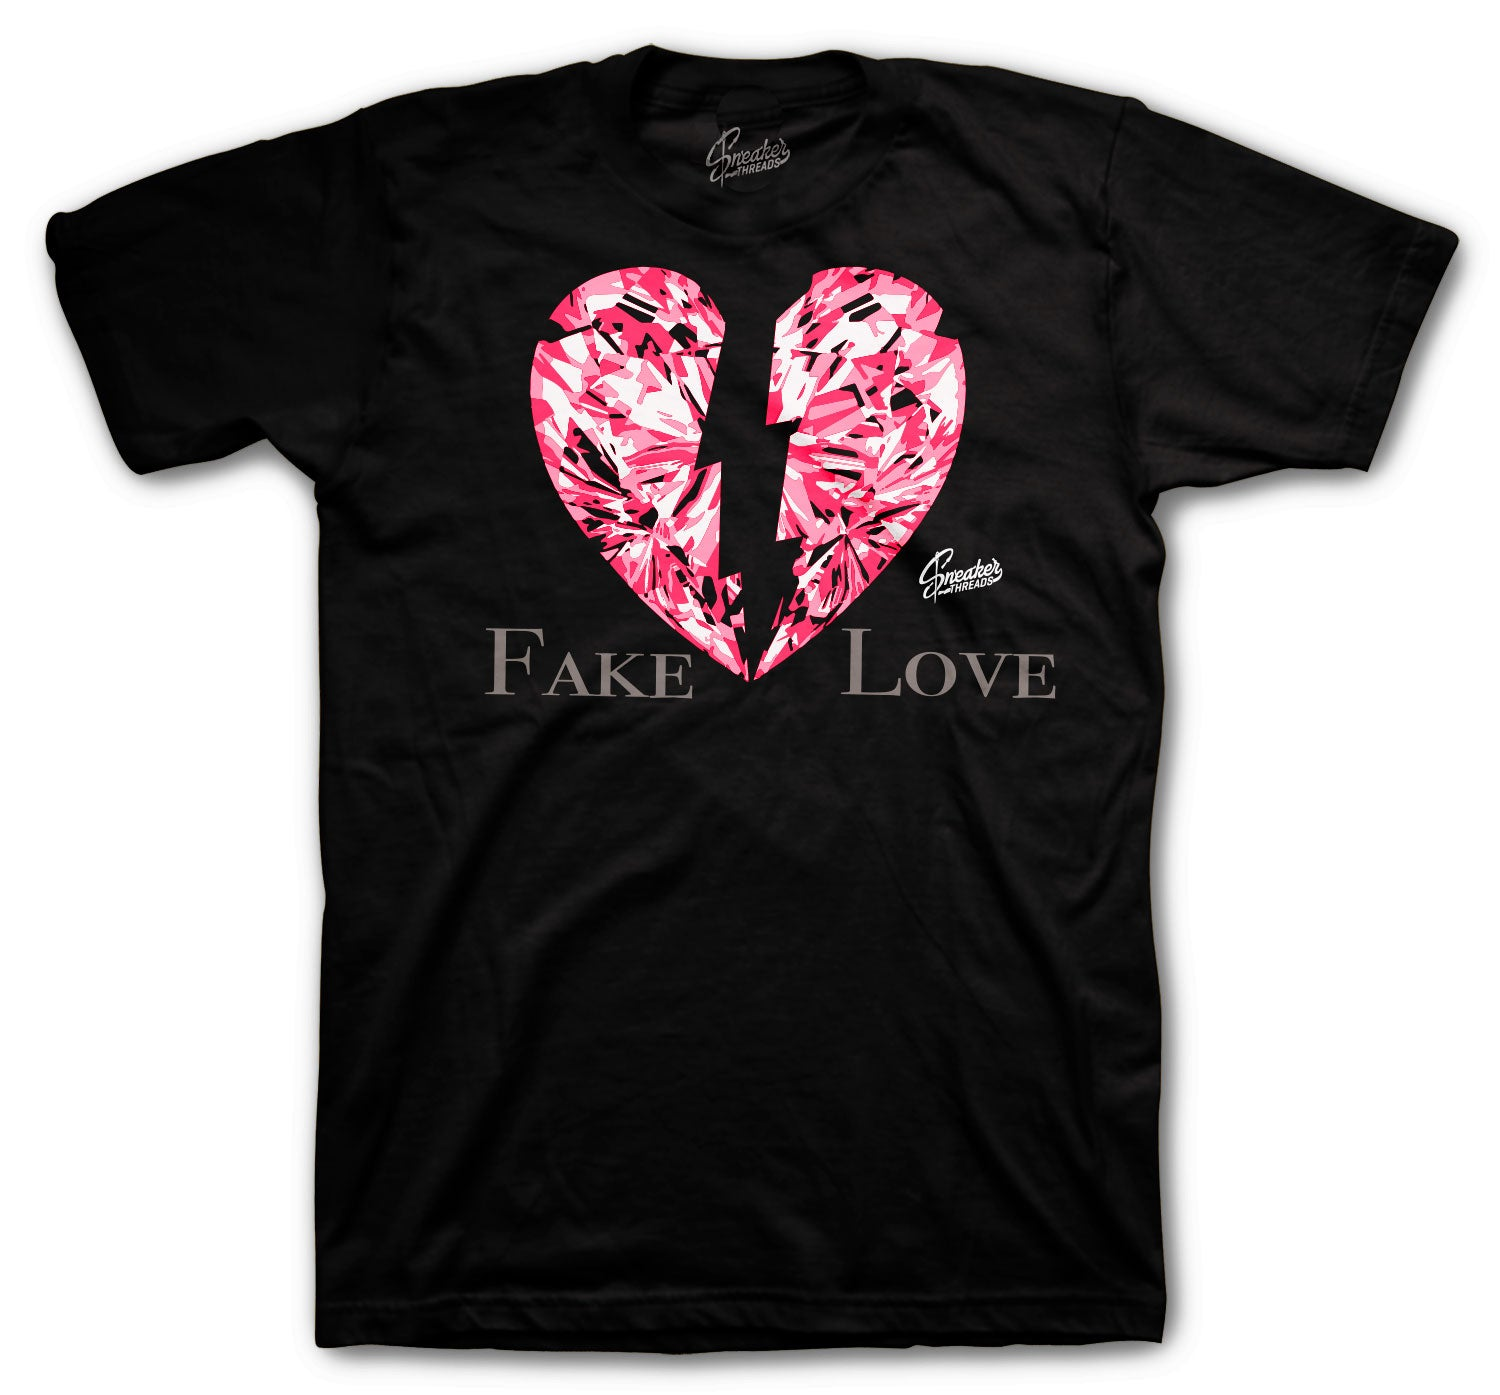 Jordan 4 Taupe Haze Shirt - Fake Love - Black